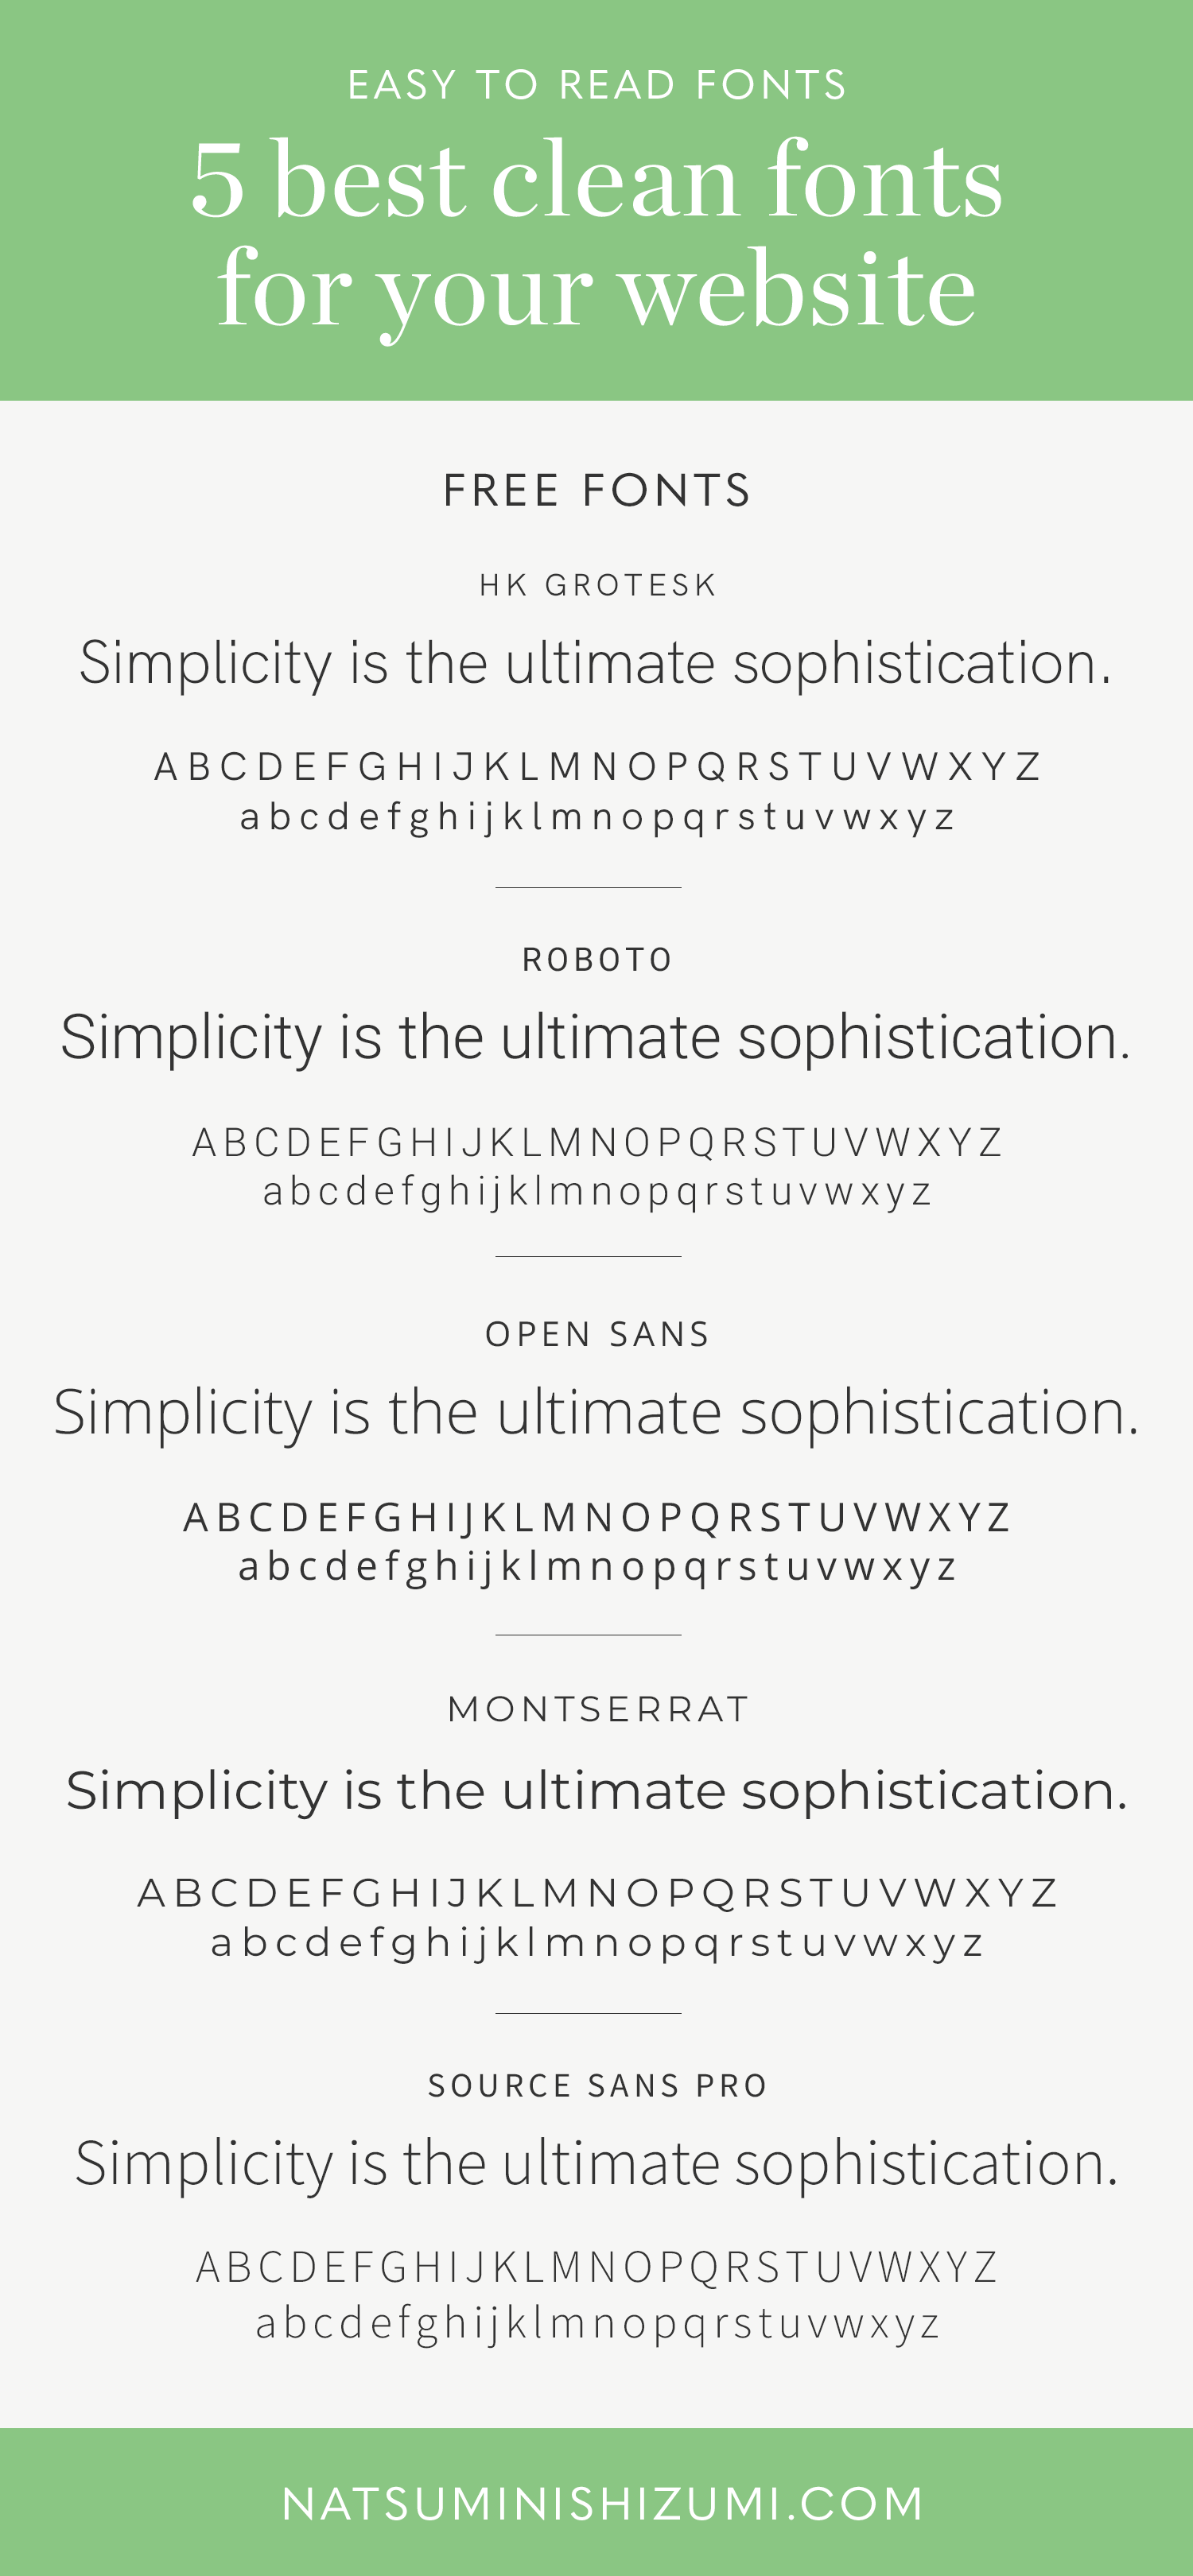 Clean fonts for a website by Natsumi Nishizumi